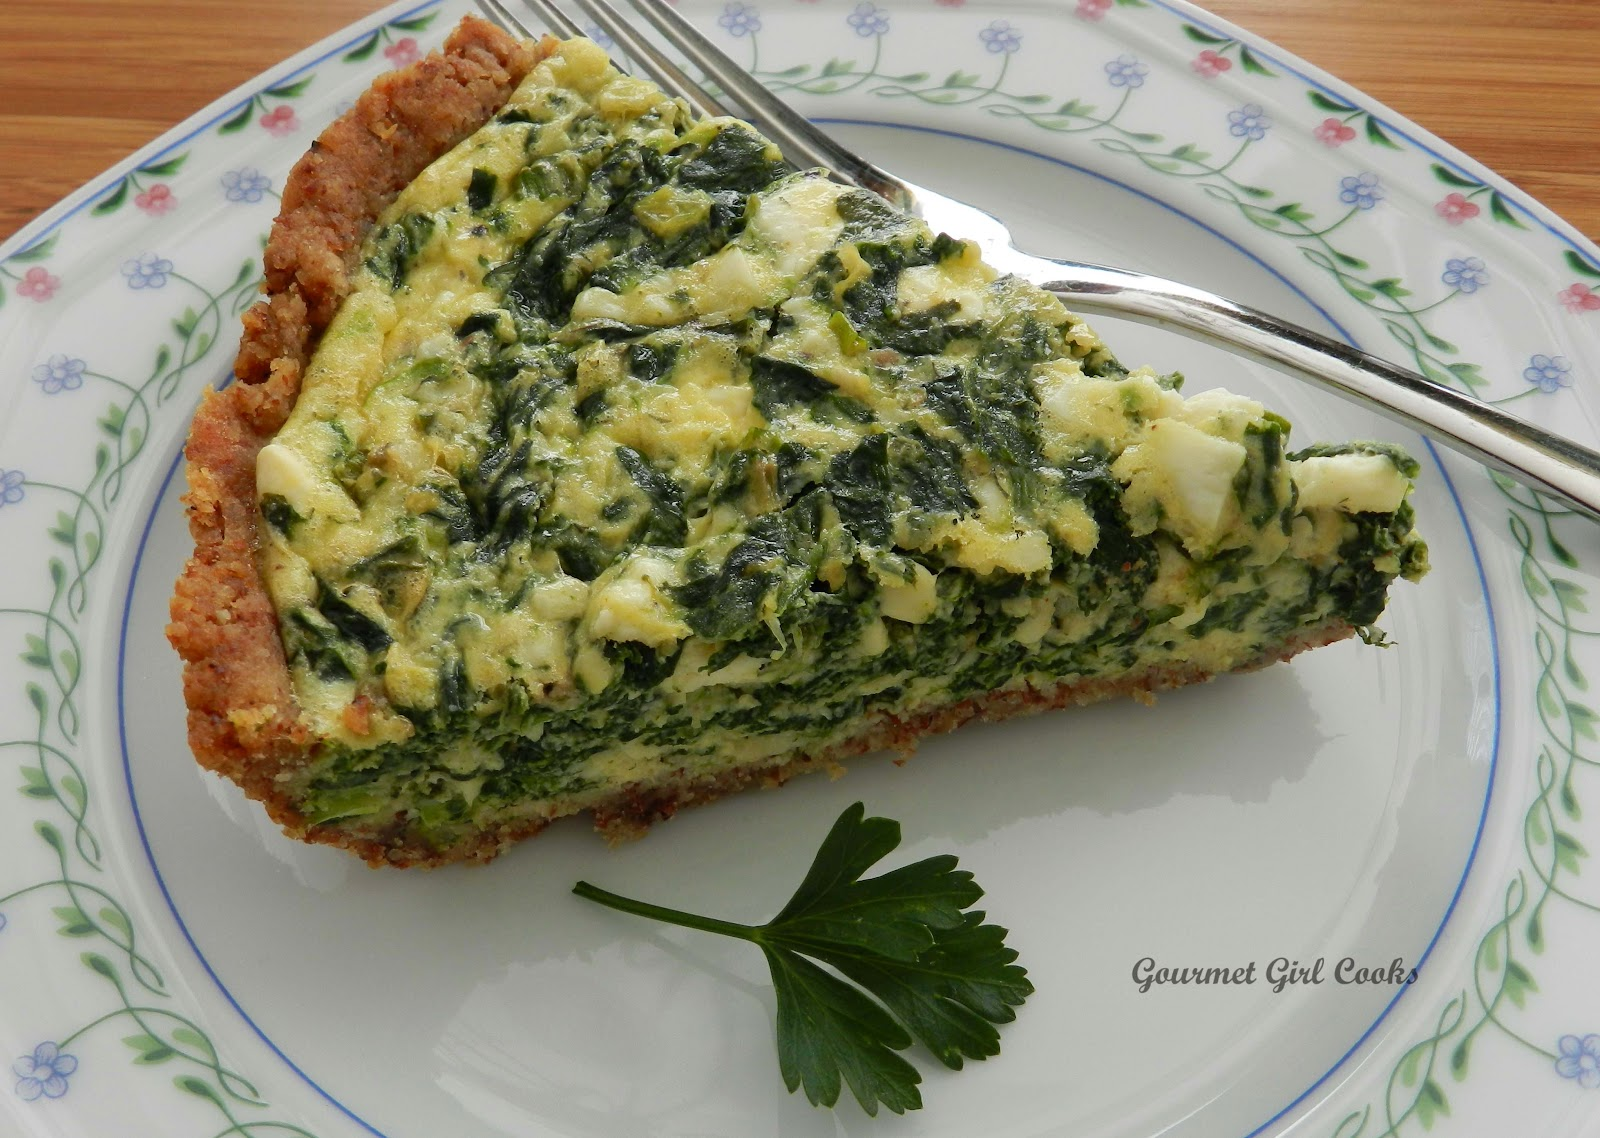 Gourmet Girl Cooks: Greek Style Spinach-Feta Pie